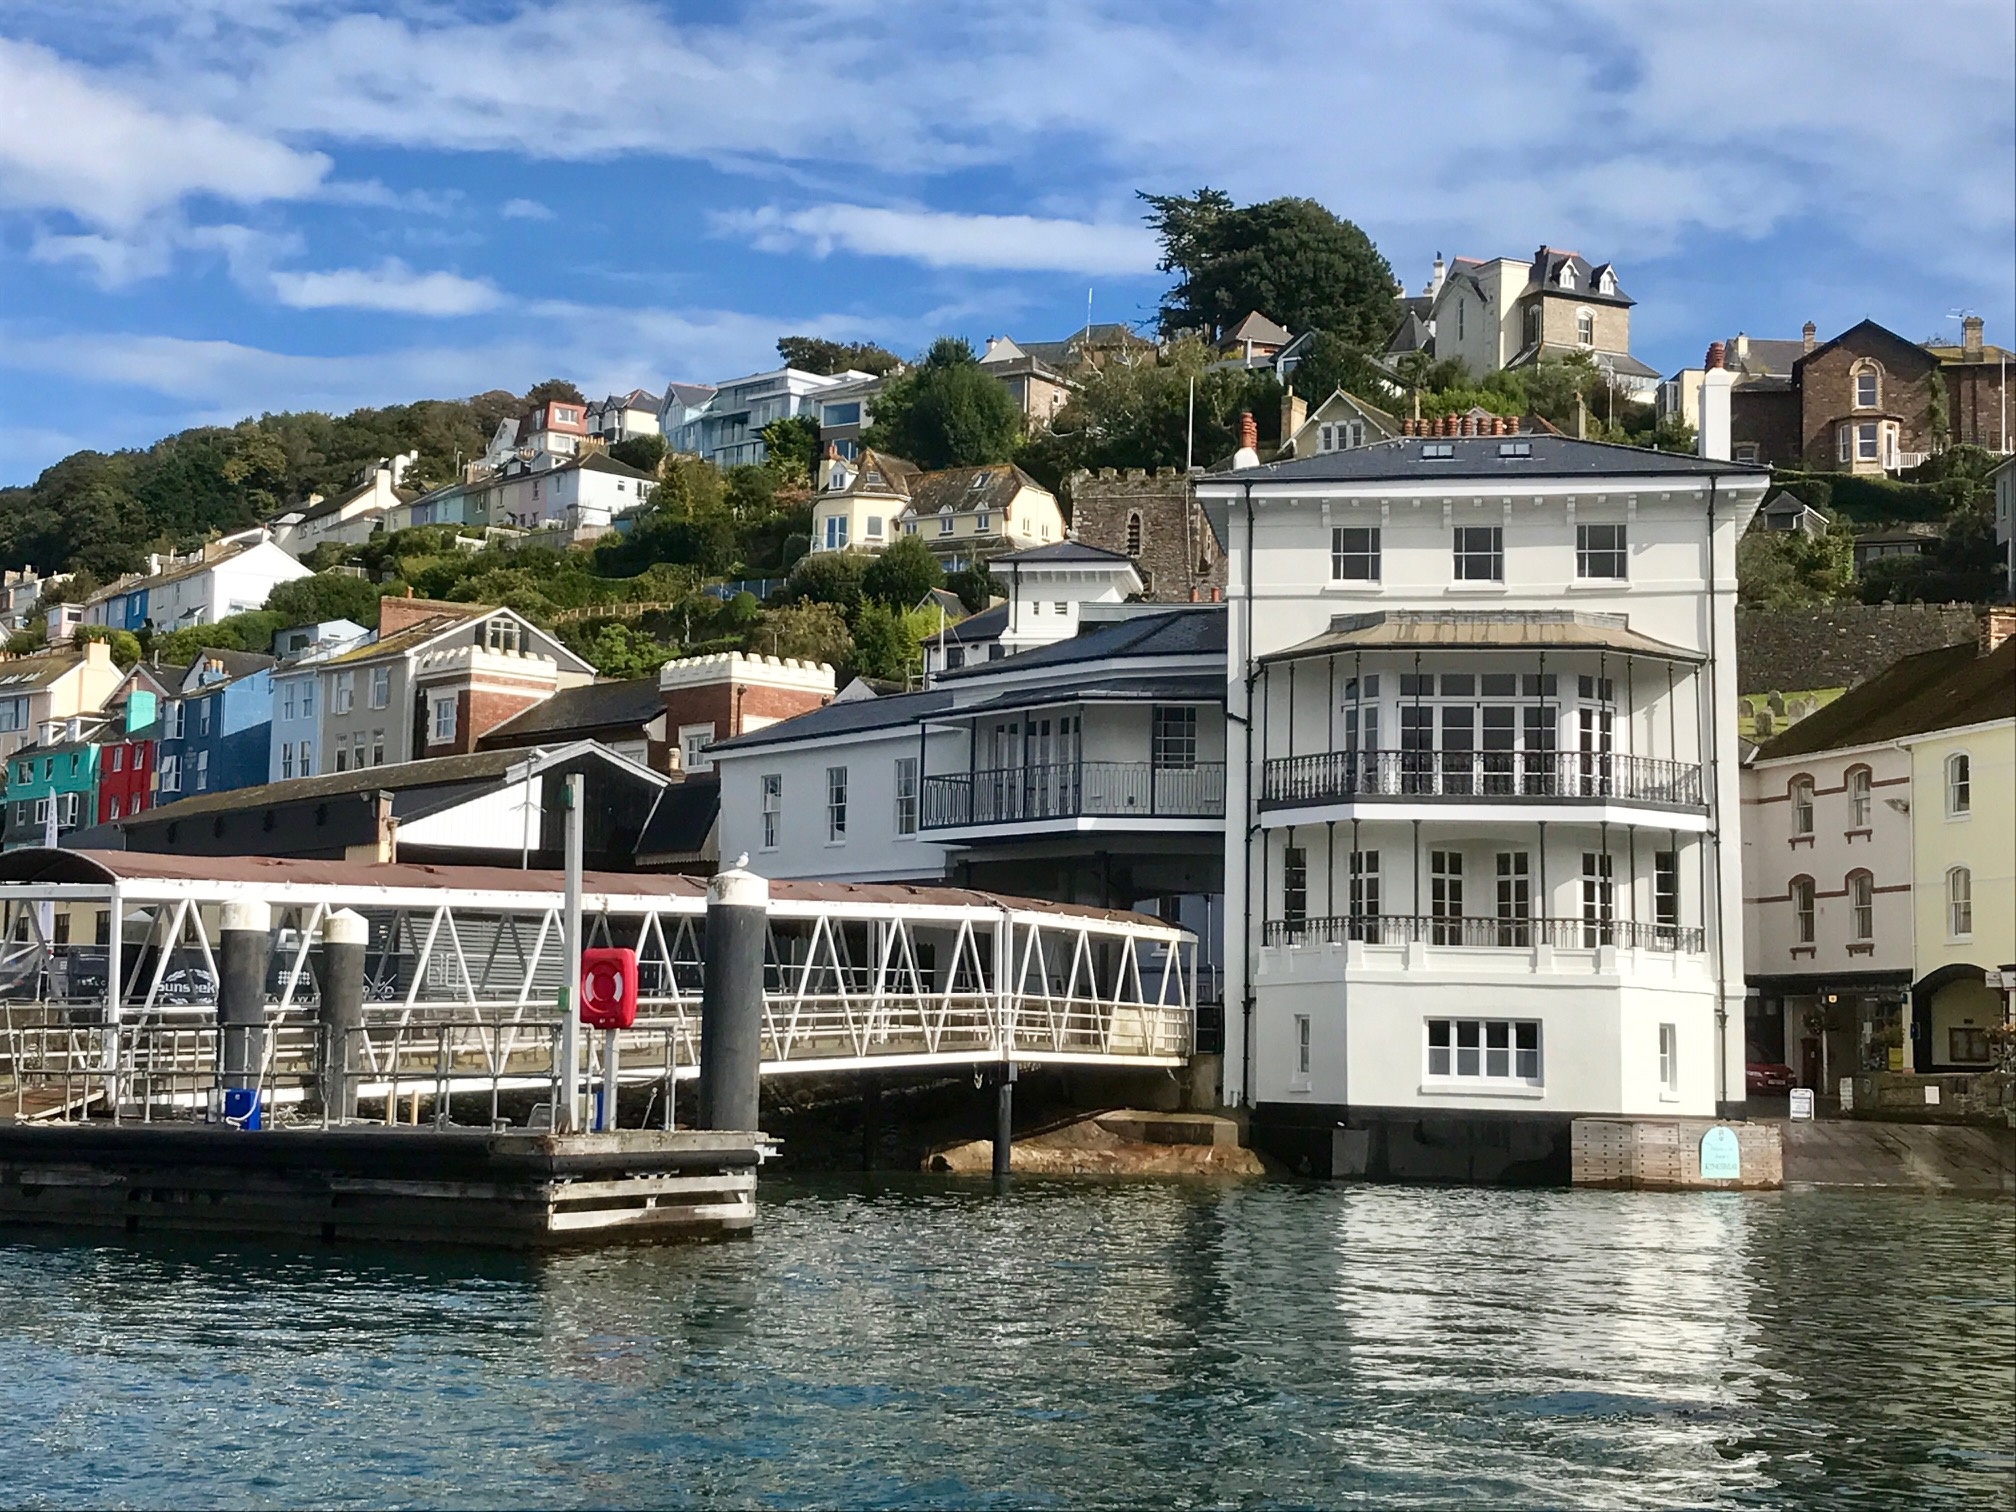 The Royal Dart Apartment 3, Kingswear, Devon